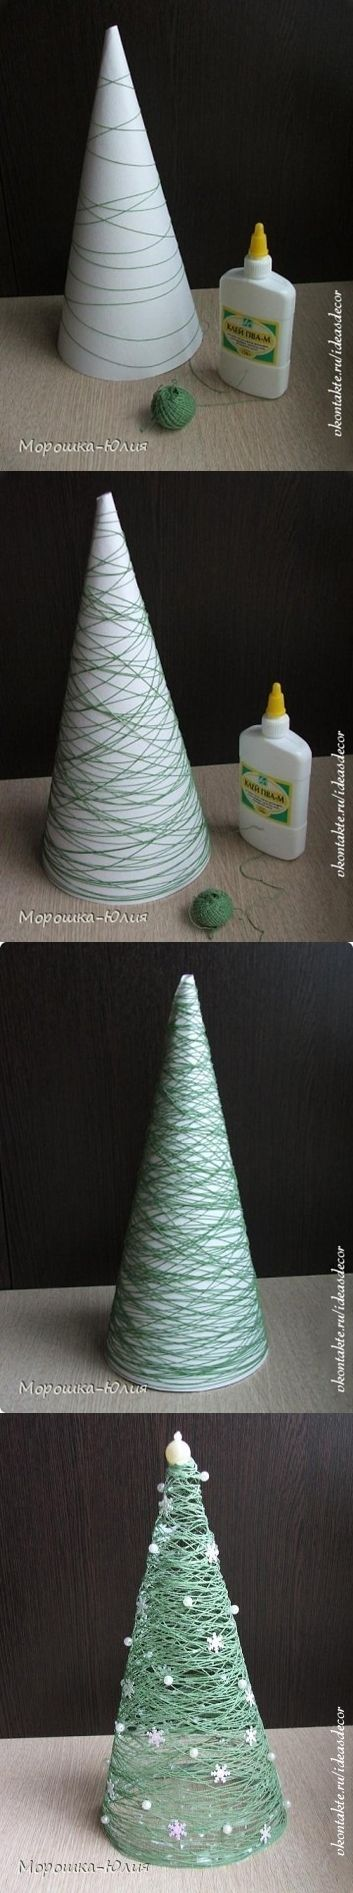 Remember the string eggs for Easter, well here's an idea with string